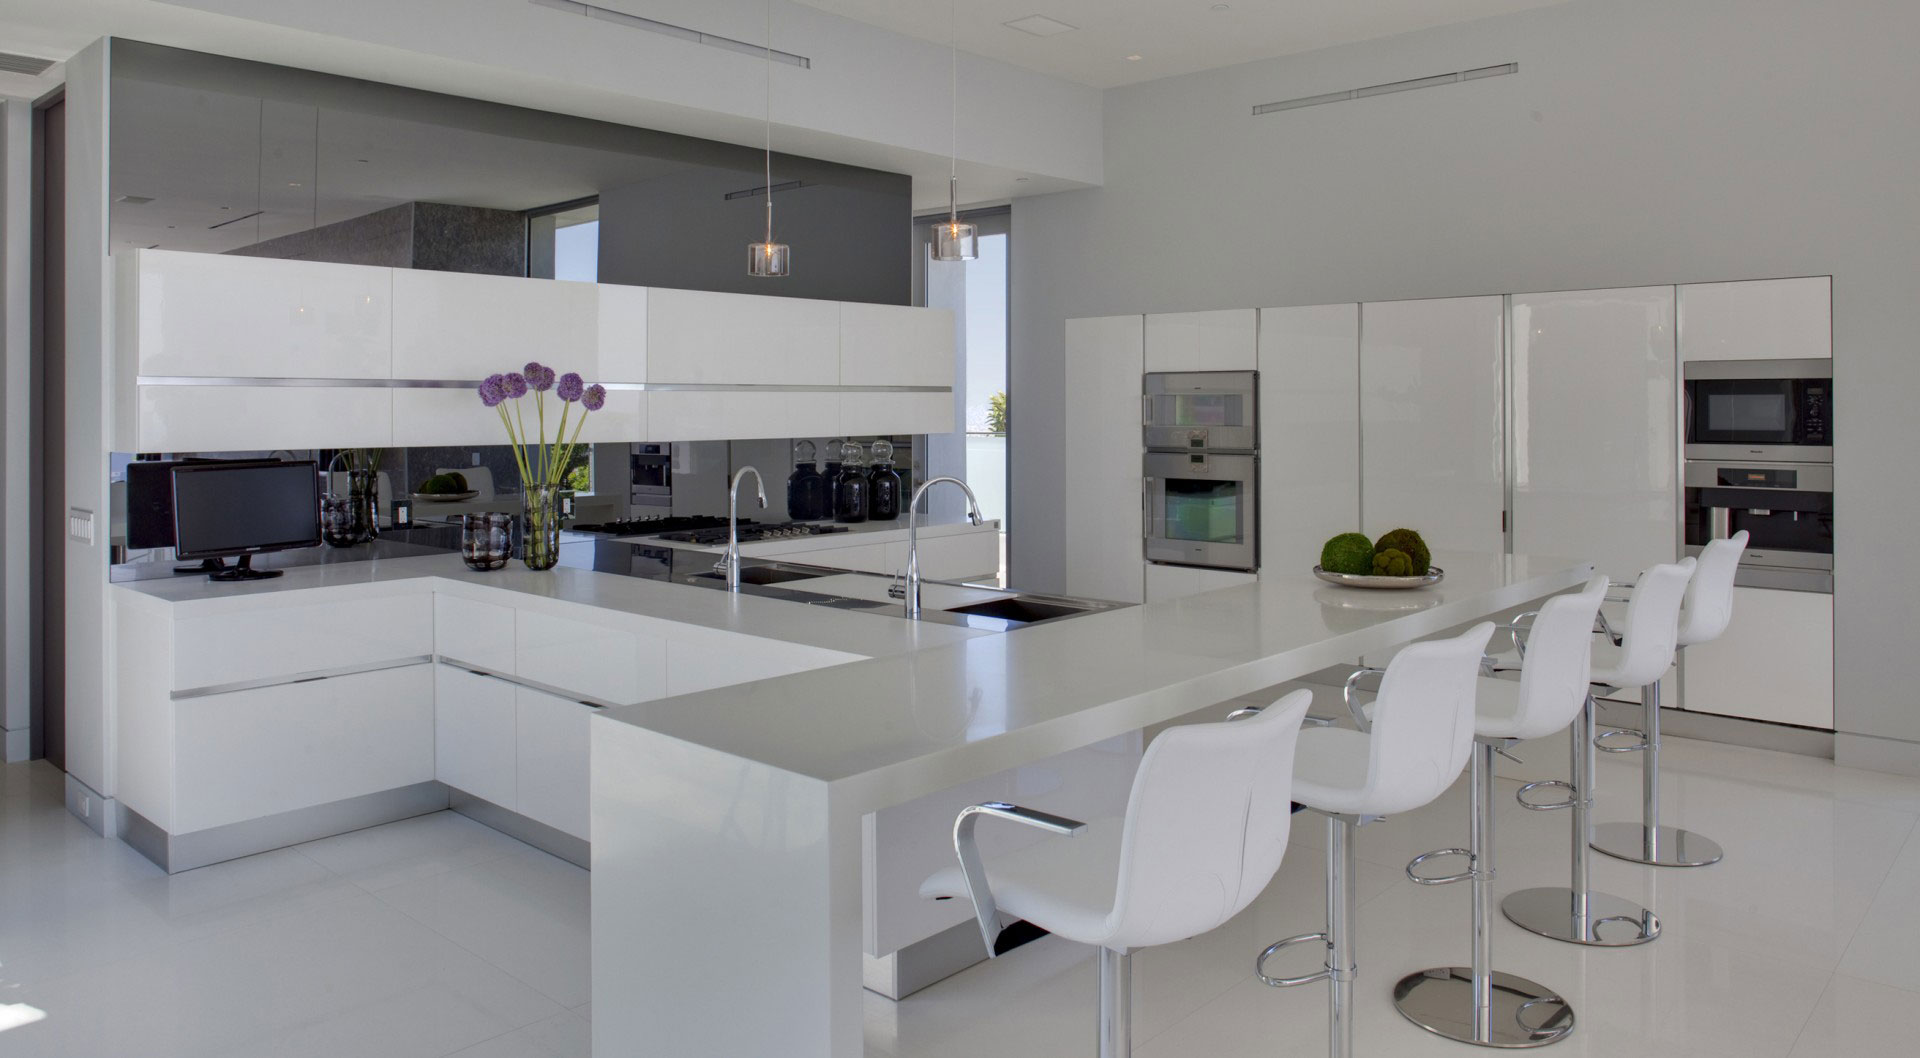 White Kitchen Breakfast Bar Stools Tanager Residence In